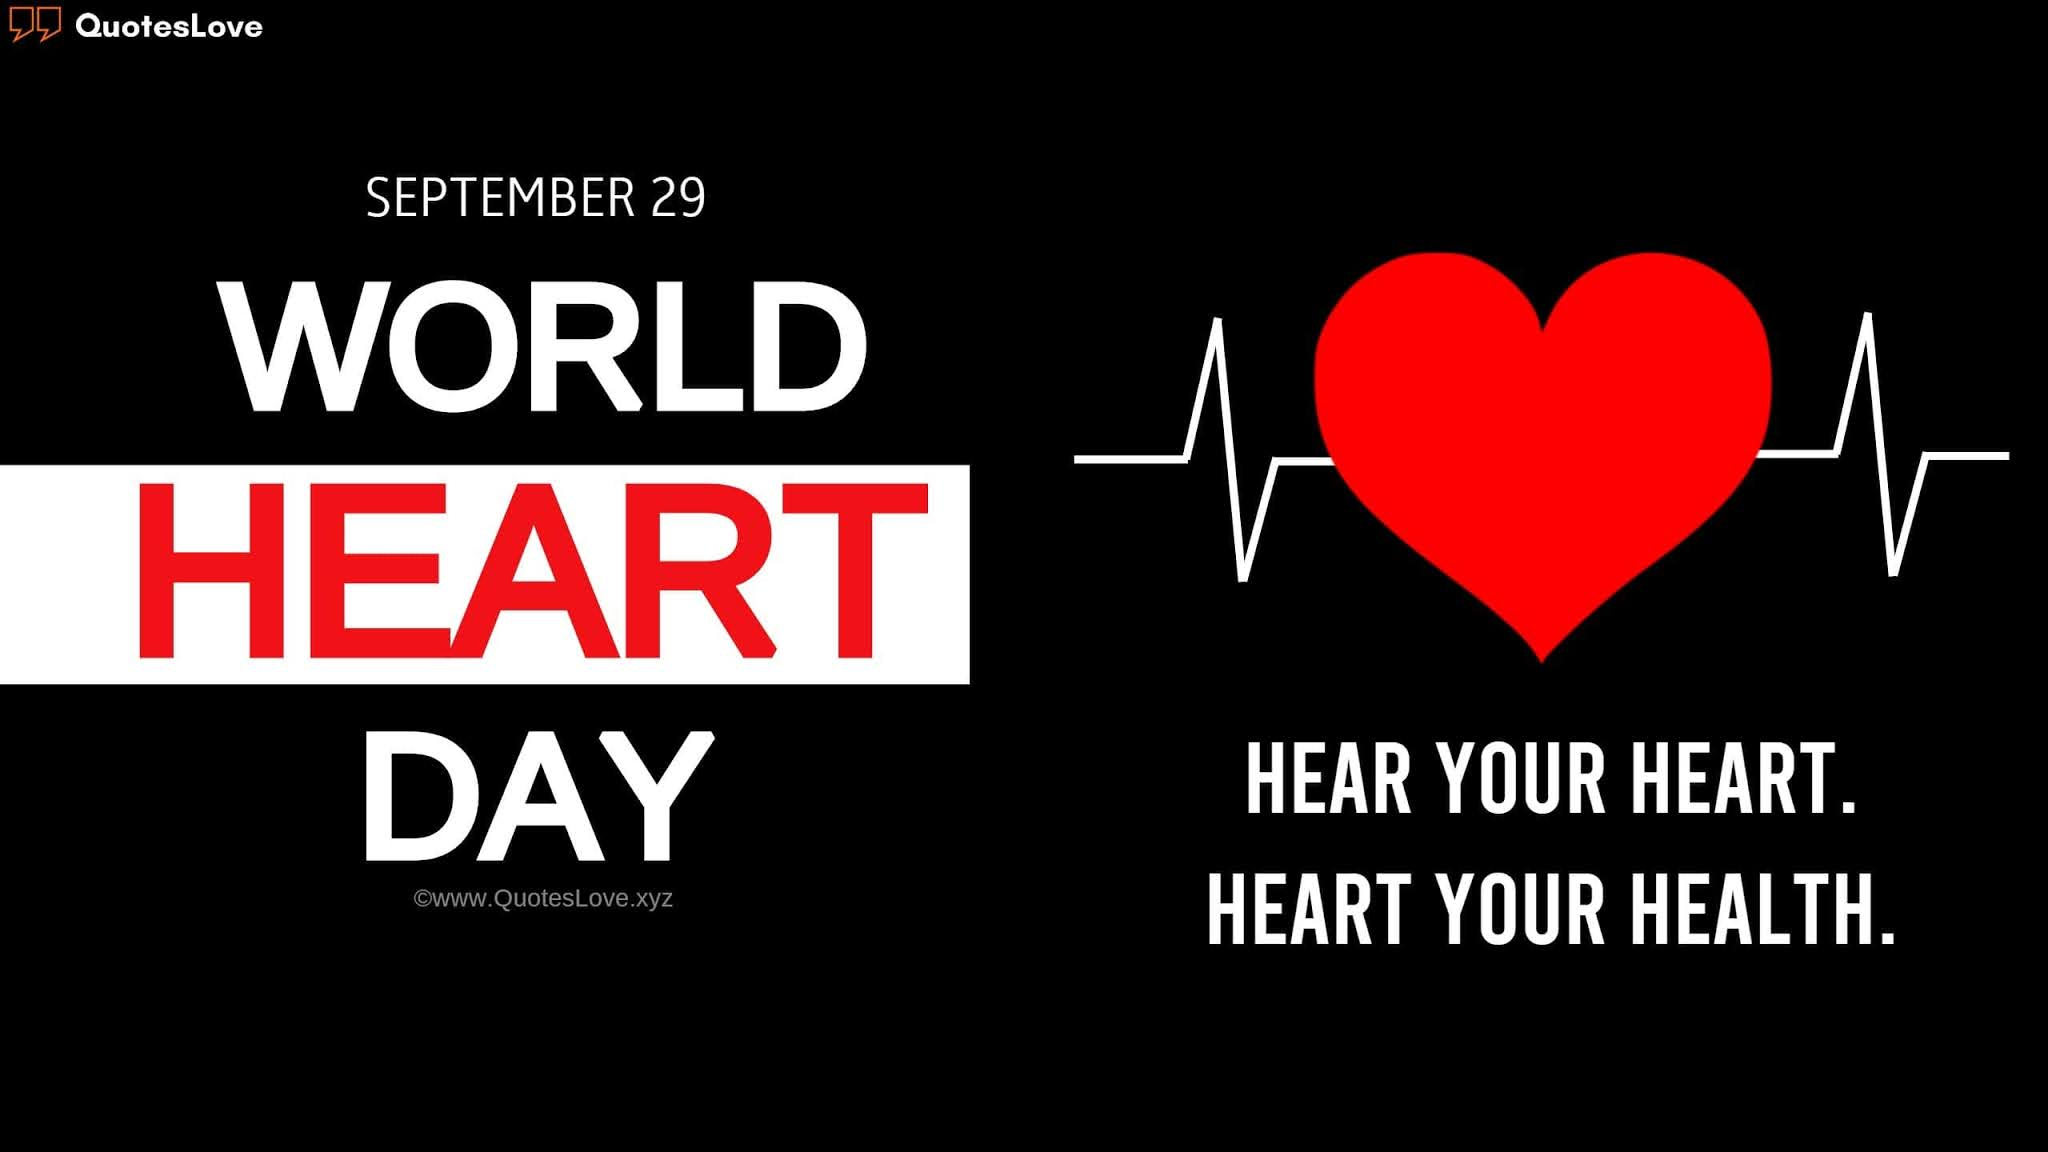 World Heart Day Quotes, Slogans, Wishes, Greetings, Messages, Poster, Images, Pictures, Wallpaper